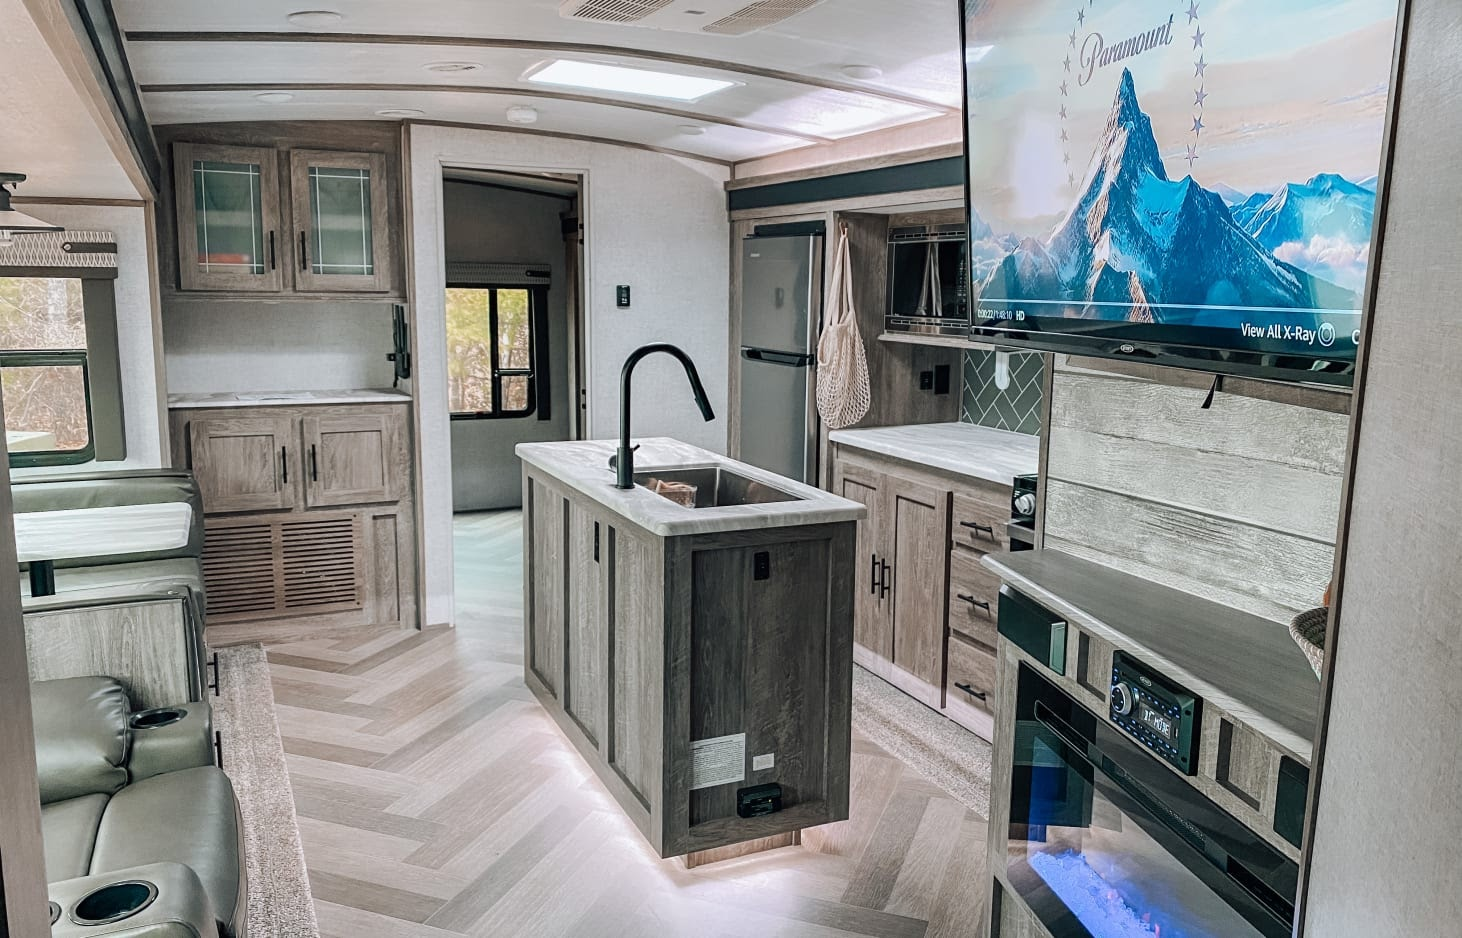 glamping in tx - This luxurious RV has 2 bedrooms.